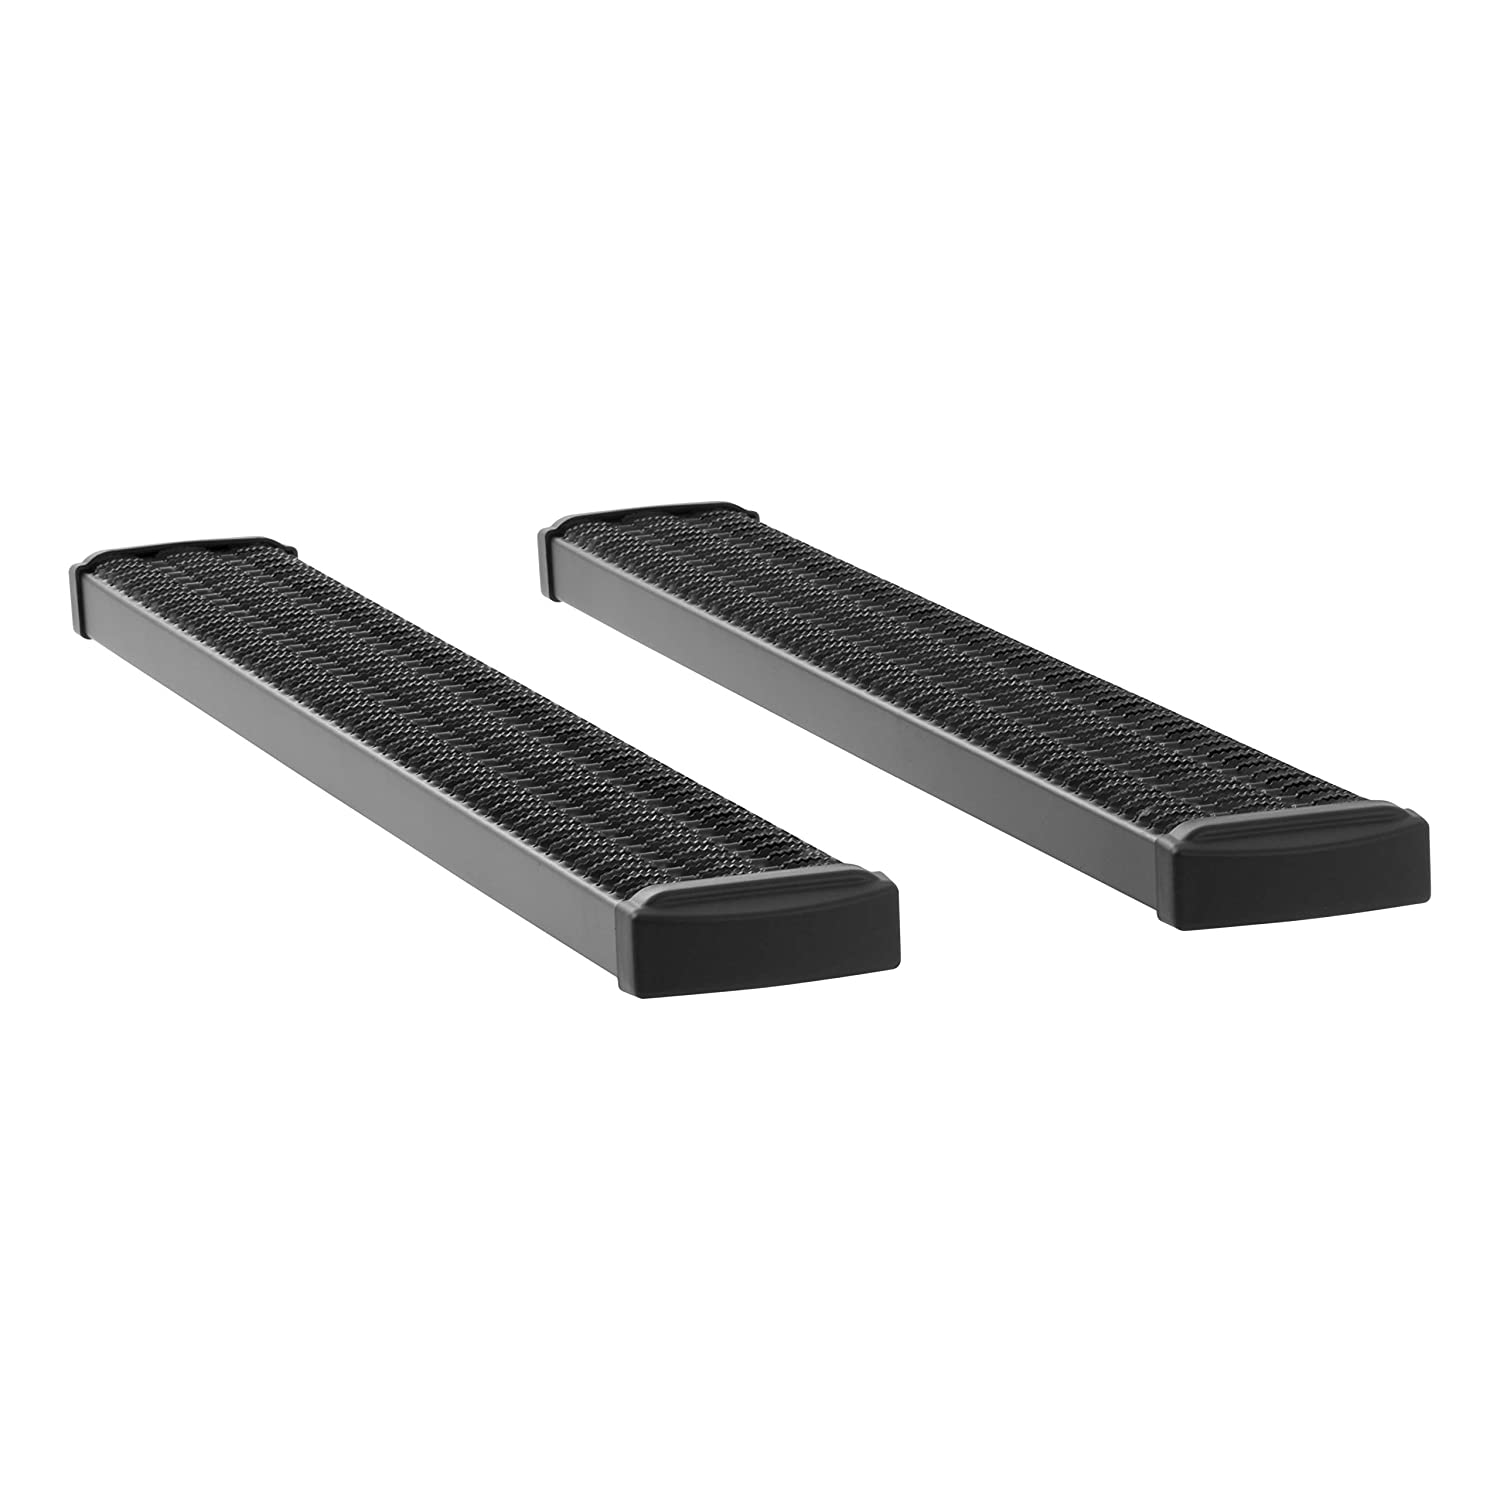 F-450 F-350 LUVERNE 415060-401721 Grip Step Black Aluminum 60-Inch Truck Running Boards for Select Ford F-250 F-550 Super Duty